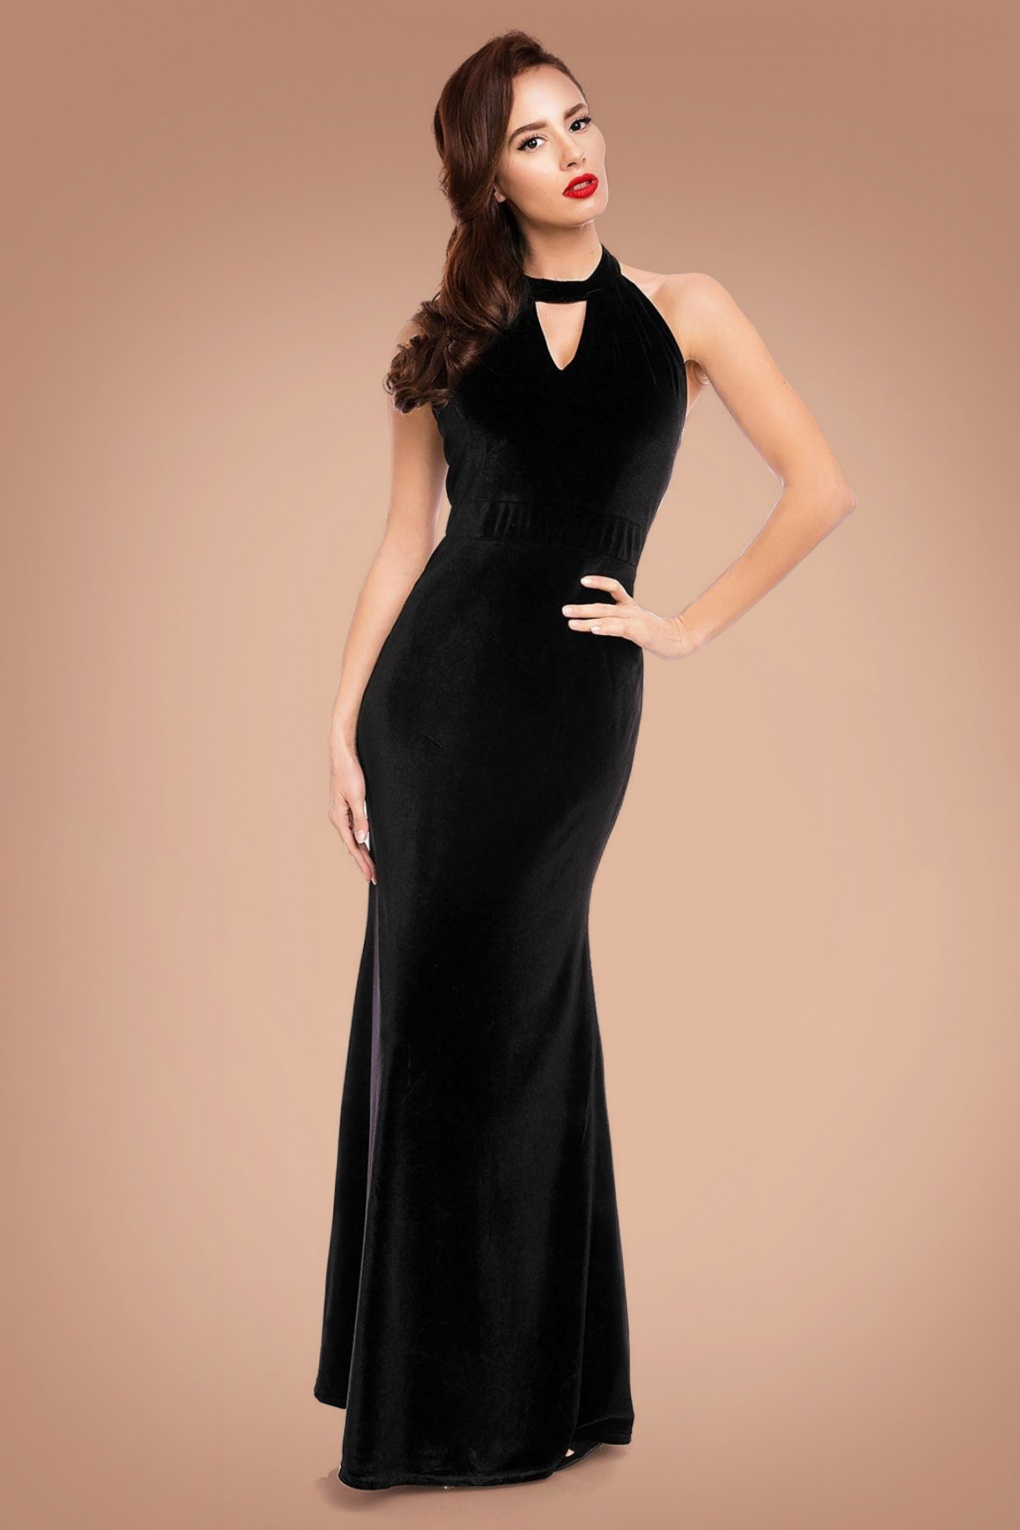 1950s Prom Dresses & Party Dresses 50s Eleanor Halter Maxi Dress in Black Velvet £57.93 AT vintagedancer.com